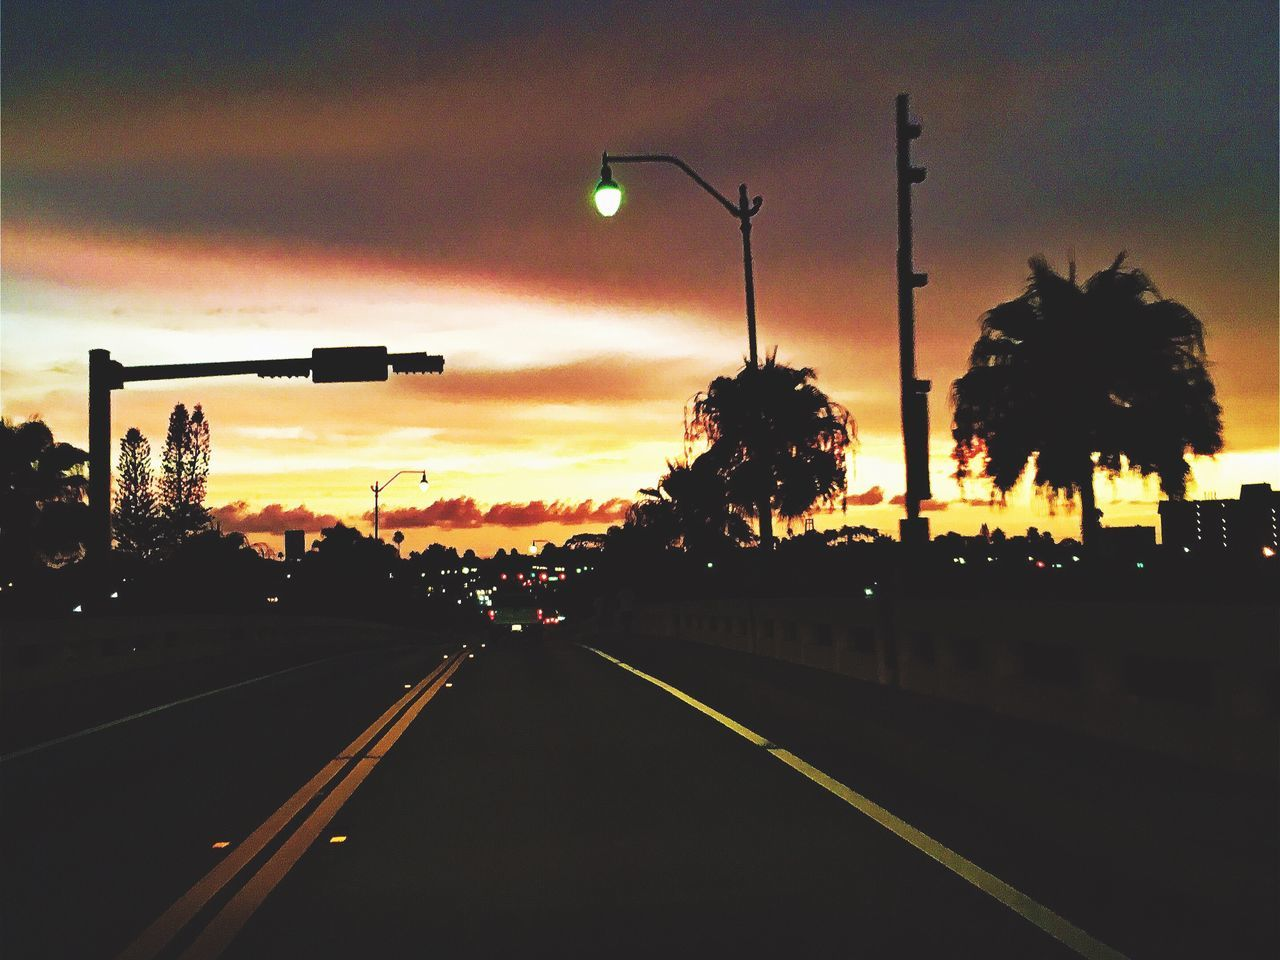 transportation, road, sunset, street light, car, illuminated, tree, sky, the way forward, stoplight, street, mode of transport, outdoors, silhouette, land vehicle, no people, city, road sign, architecture, day, nature